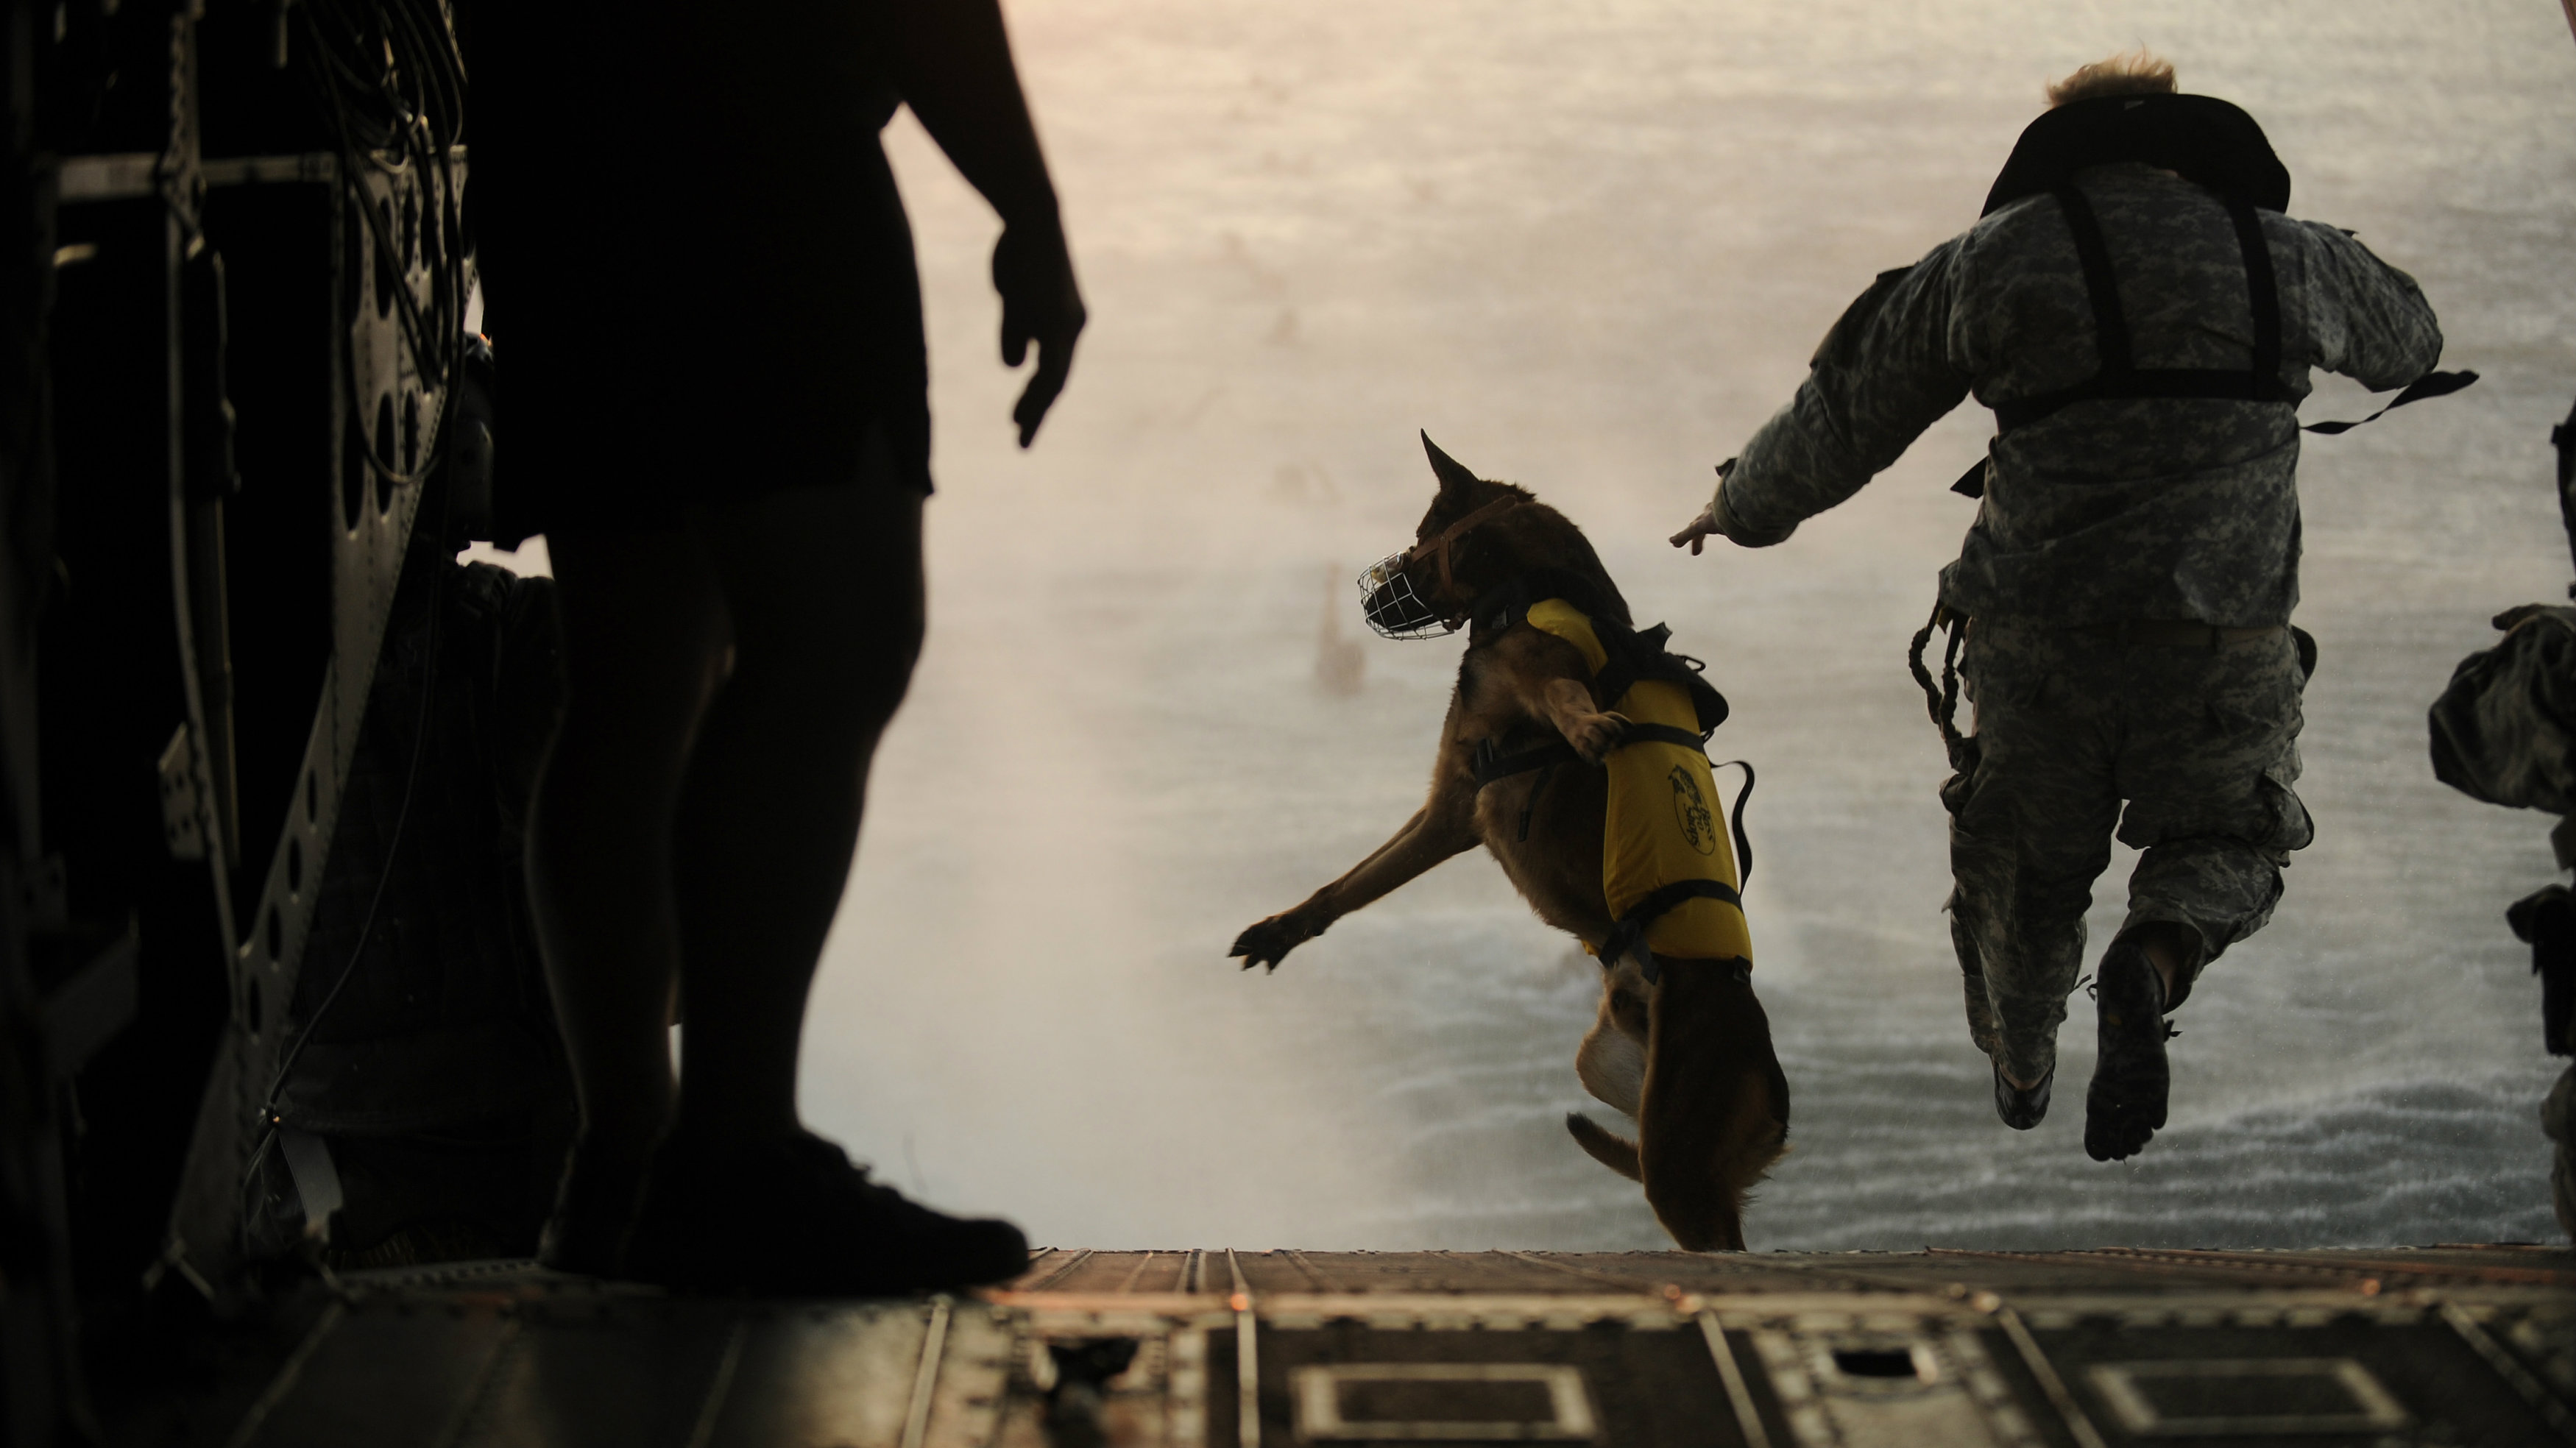 A U.S. Army soldier with the 10th Special Forces Group and his military working dog jump off the ramp of a CH-47 Chinook helicopter from the 160th Special Operations Aviation Regiment during water training over the Gulf of Mexico as part of exercise Emerald Warrior 2011 in this U.S. military handout image from March 1, 2011. The New York Times and other United States media have reported that a military canine accompanied Navy SEAL Team Six commandos into a compound in Abbottabad, Pakistan in a raid that killed al Qaeda leader Osama bin Laden. REUTERS/Manuel J. Martinez/U.S. Air Force/Handout (UNITED STATES - Tags: ANIMALS MILITARY CONFLICT CIVIL UNREST) FOR EDITORIAL USE ONLY. NOT FOR SALE FOR MARKETING OR ADVERTISING CAMPAIGNS. THIS IMAGE HAS BEEN SUPPLIED BY A THIRD PARTY. IT IS DISTRIBUTED, EXACTLY AS RECEIVED BY REUTERS, AS A SERVICE TO CLIENTS